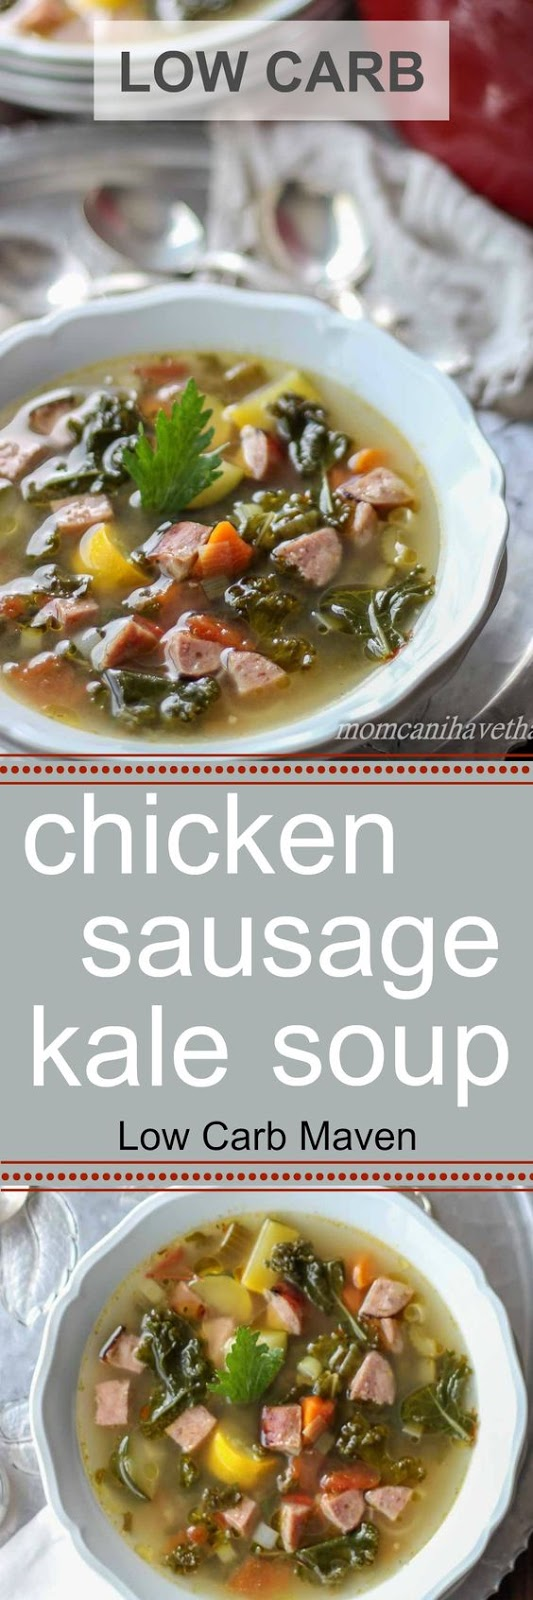 LOW CARB CHICKEN SAUSAGE AND KALE SOUP PALEO